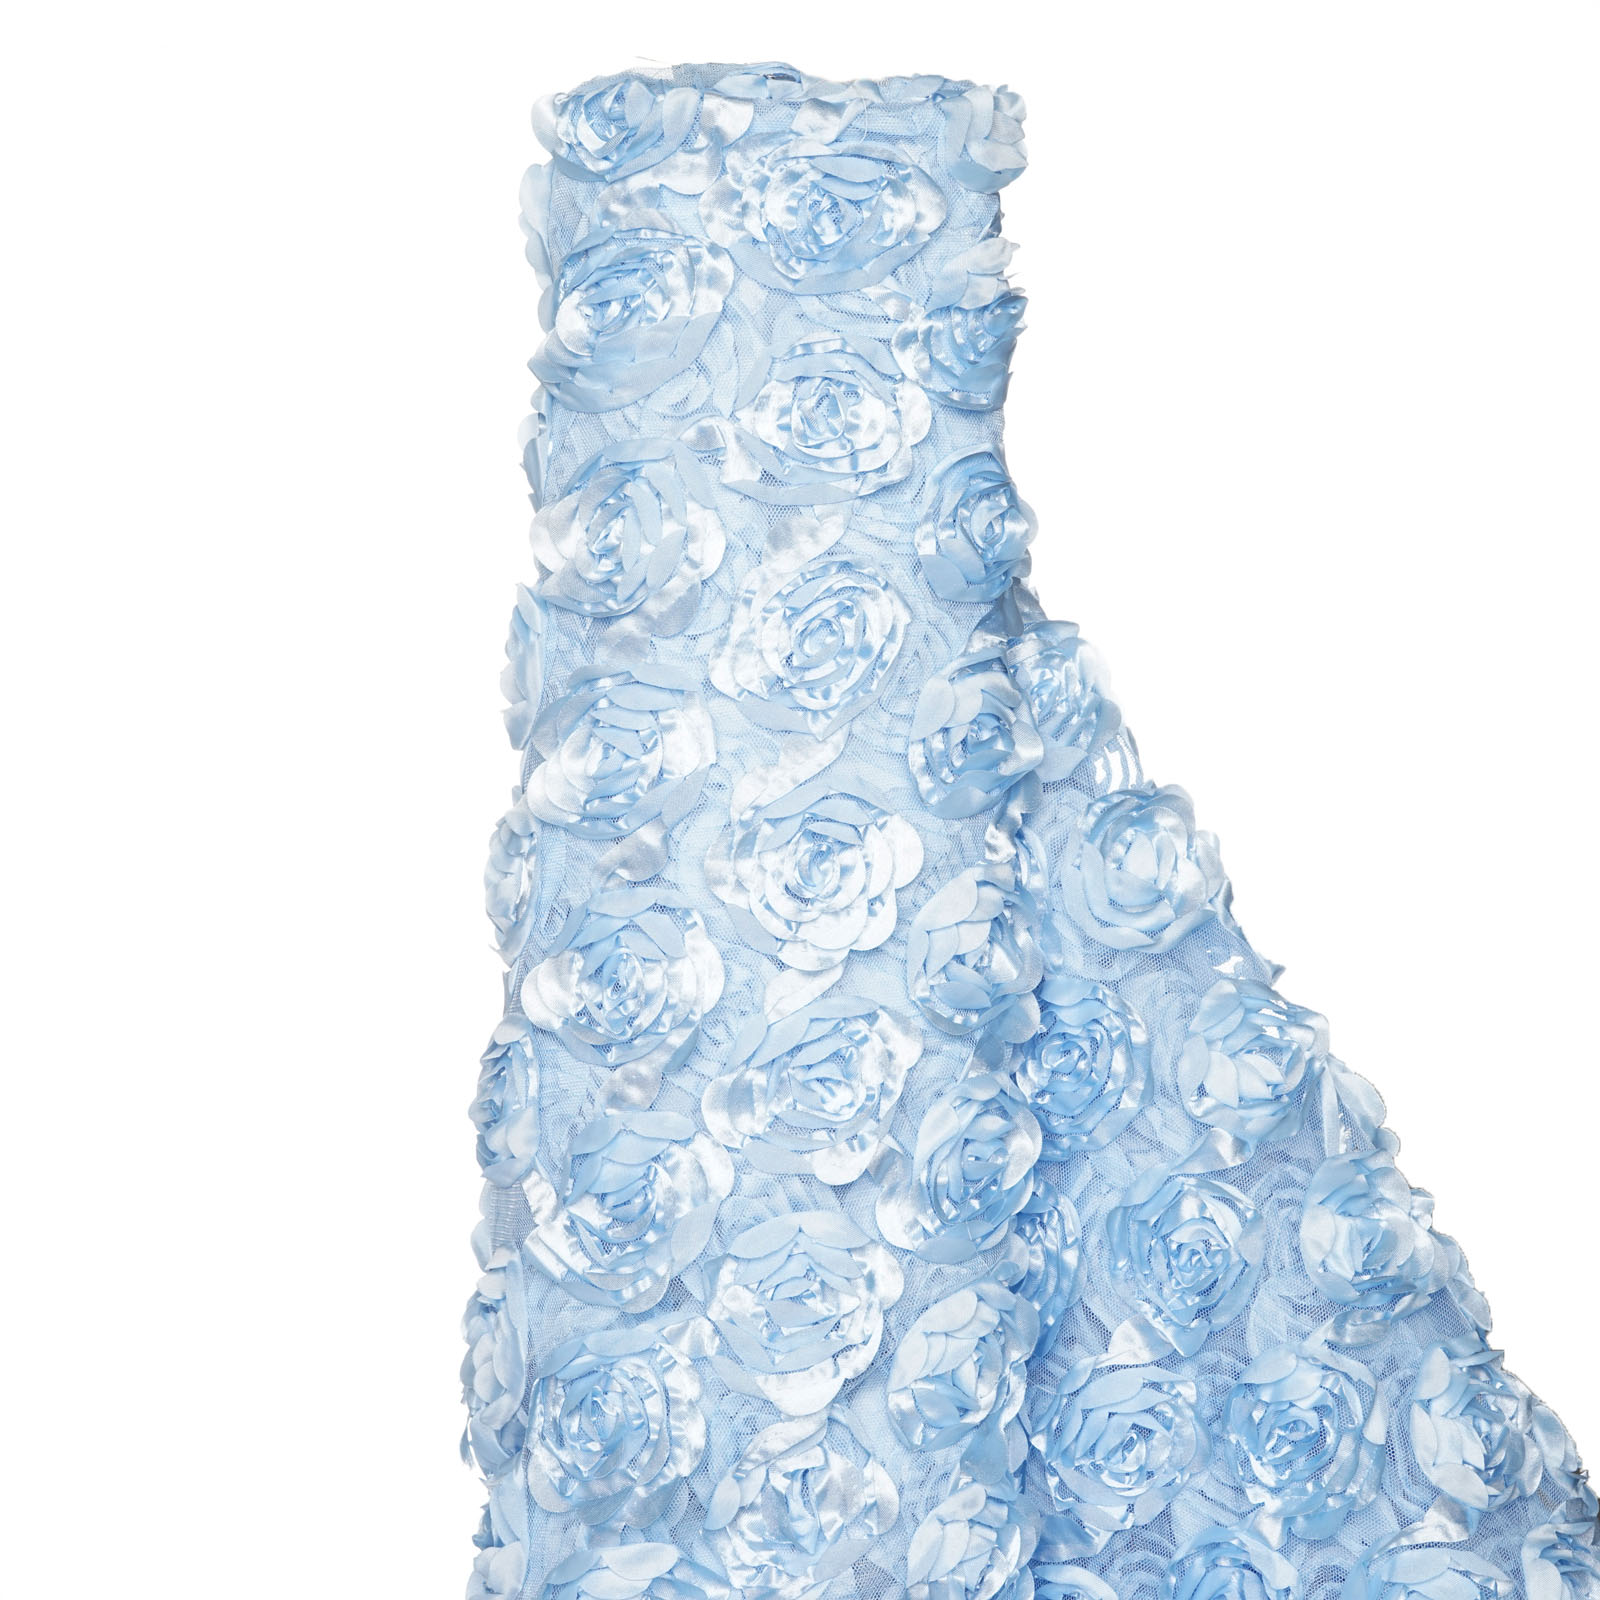 "BalsaCircle 54"" x 4 yards Satin Ribbon Roses on Lace Fabric Bolt Put-up - Sewing Crafts Draping Decorations Supplies"